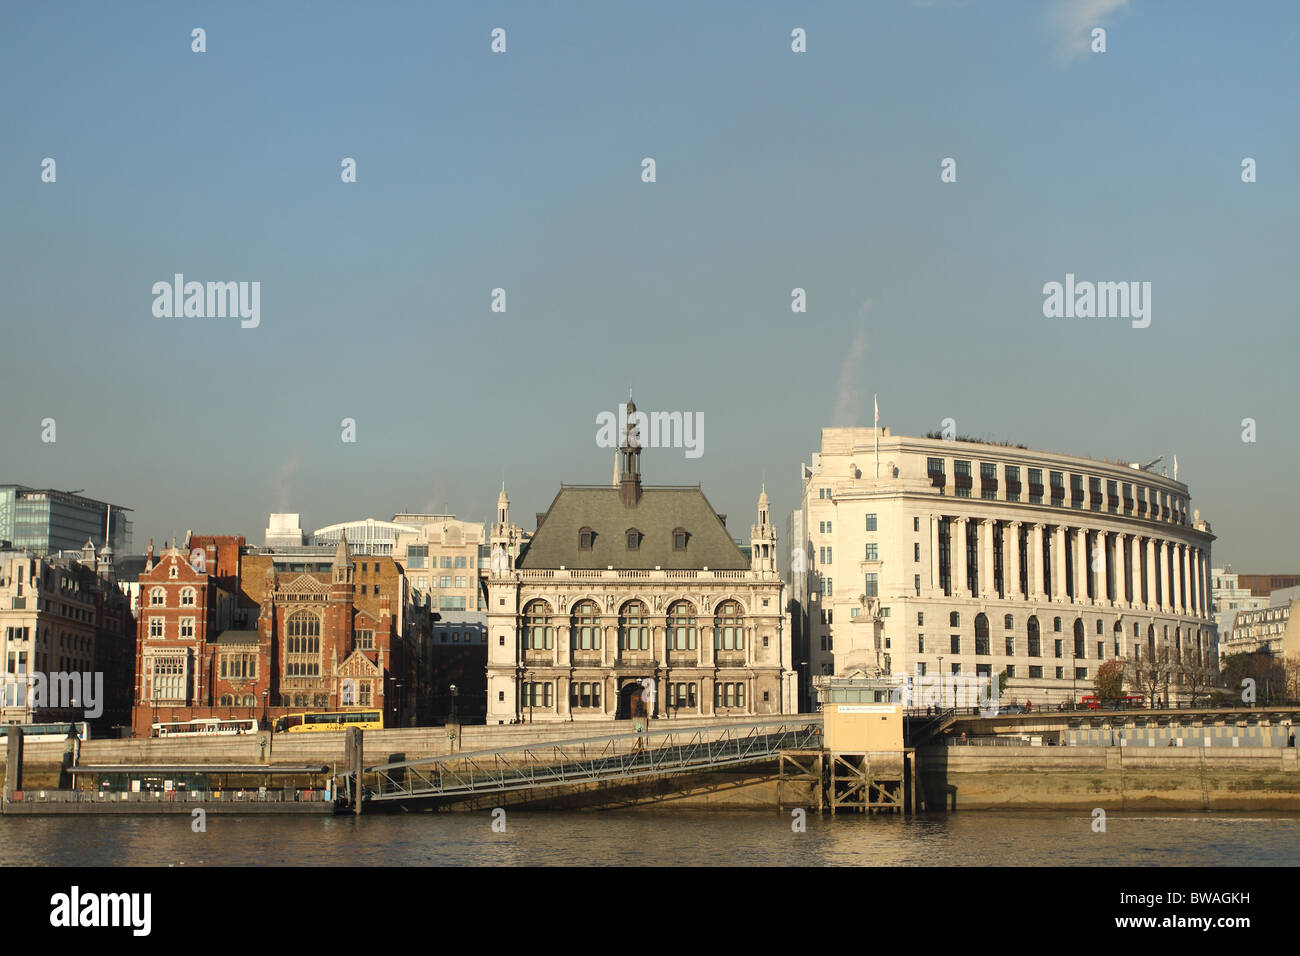 The Old City of London Boys school, taken over the river Thames - Stock Image